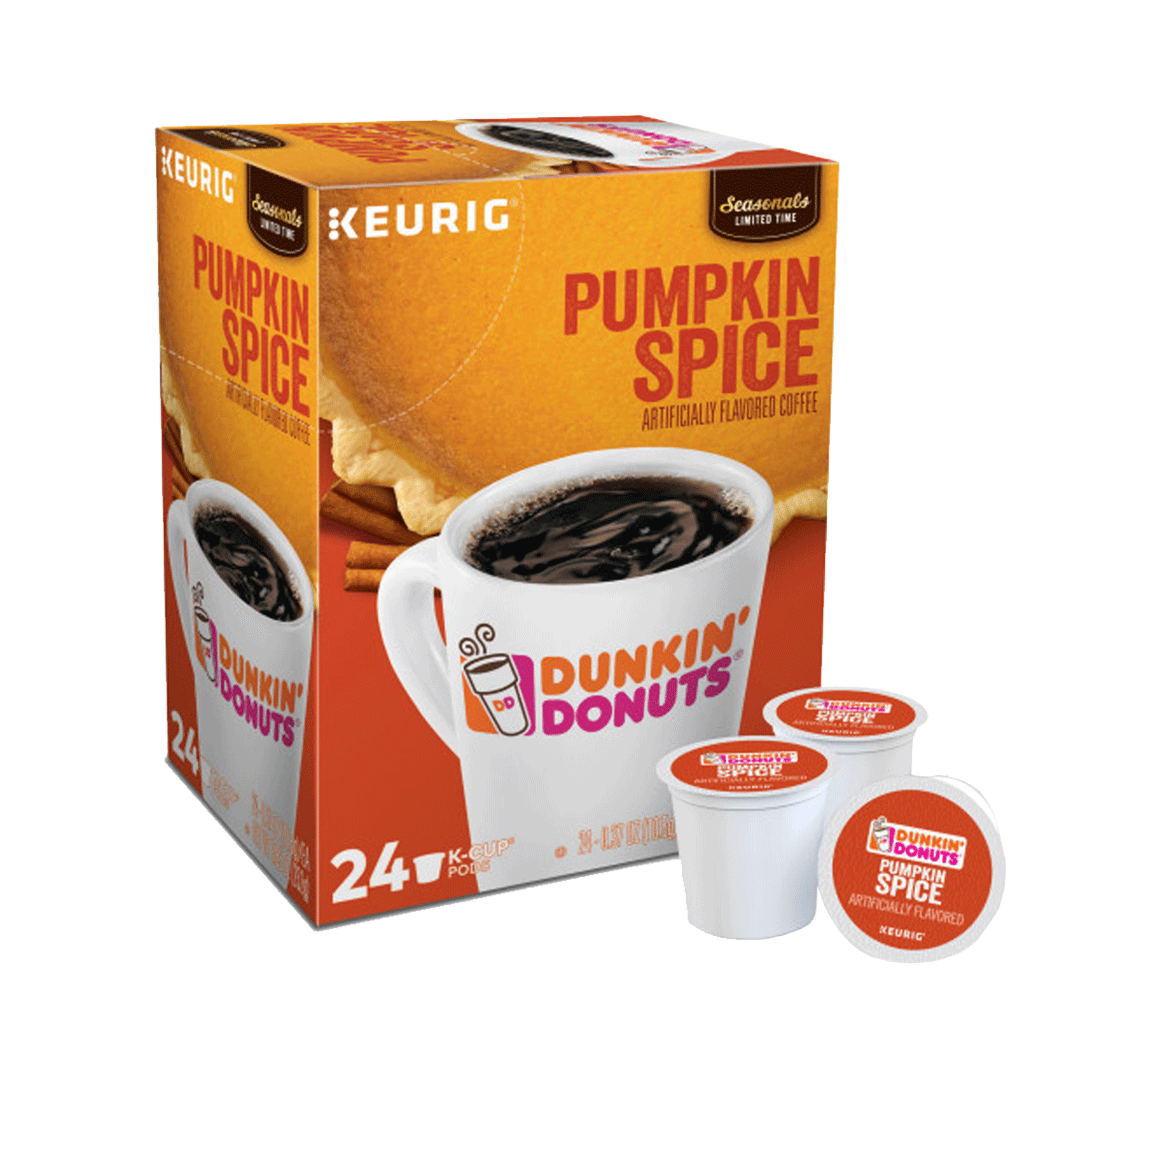 dunkin donuts k cups pumpkin spice 24 pack single serve coffee pods